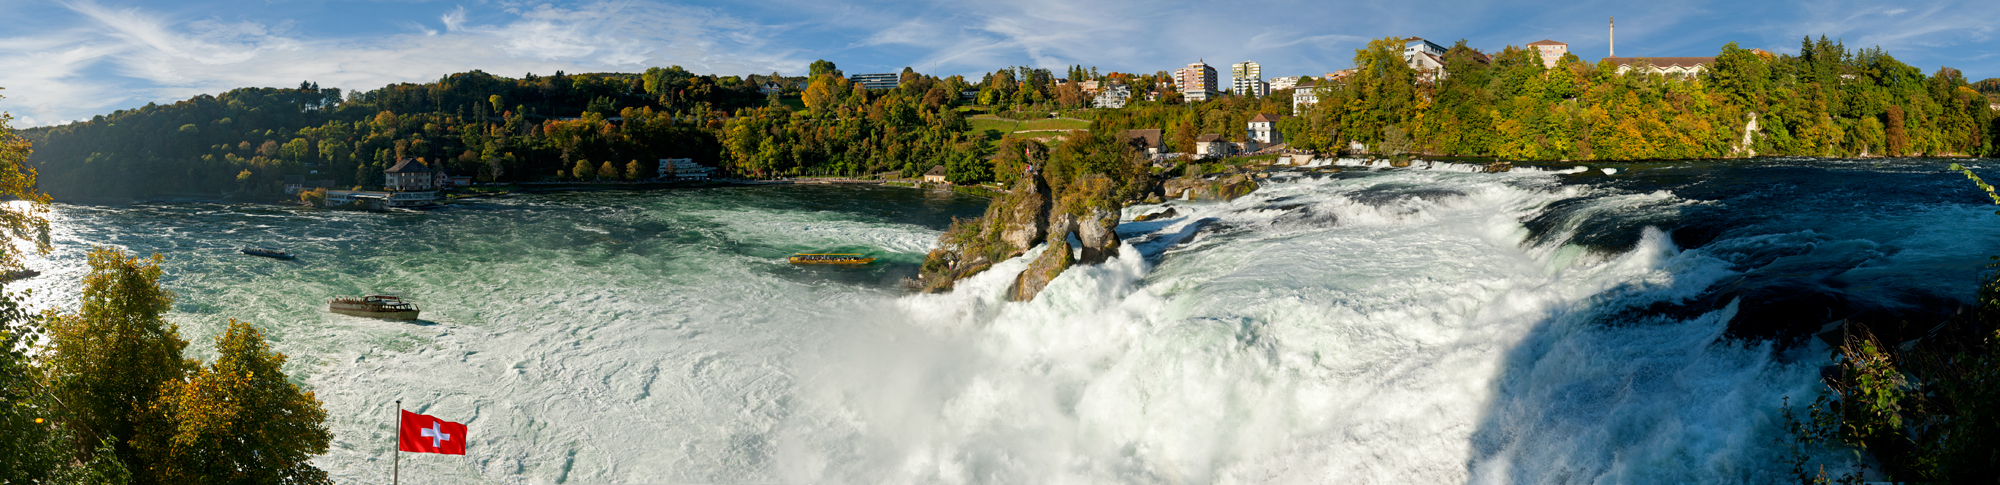 Rheinfall Schaffhausen | Collection Panorama Art: collection-panorama-art.com/en/rheinfall-schaffhausen